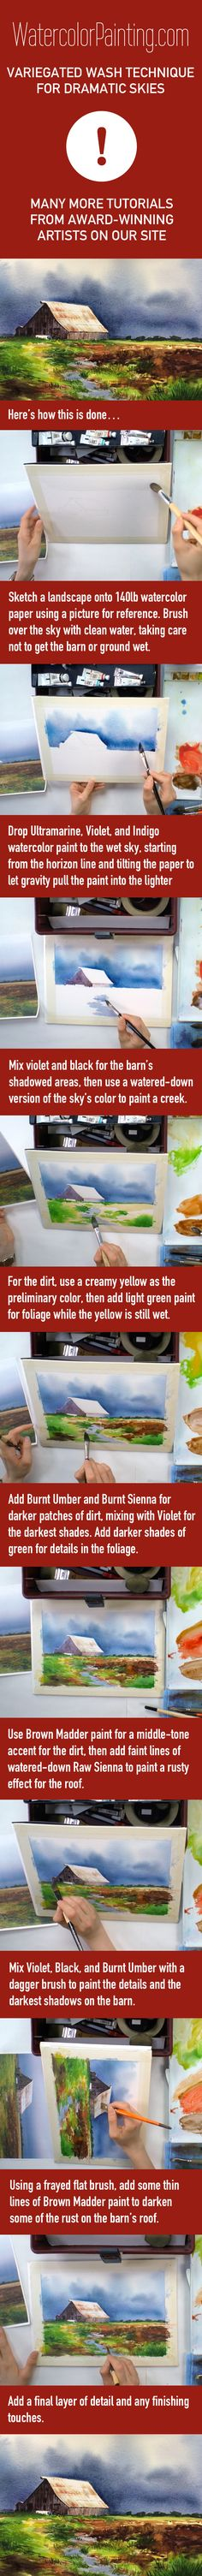 Click here for free full tutorial: http://bit.ly/1klnOfY  Includes video. Learn how to paint a dramatic landscape & sky using variegated washes and other watercolor techniques, step-by-step. Various beginner, intermediate & advanced watercolor techniques are taught as you follow along with this watercolor project. #paintingideas